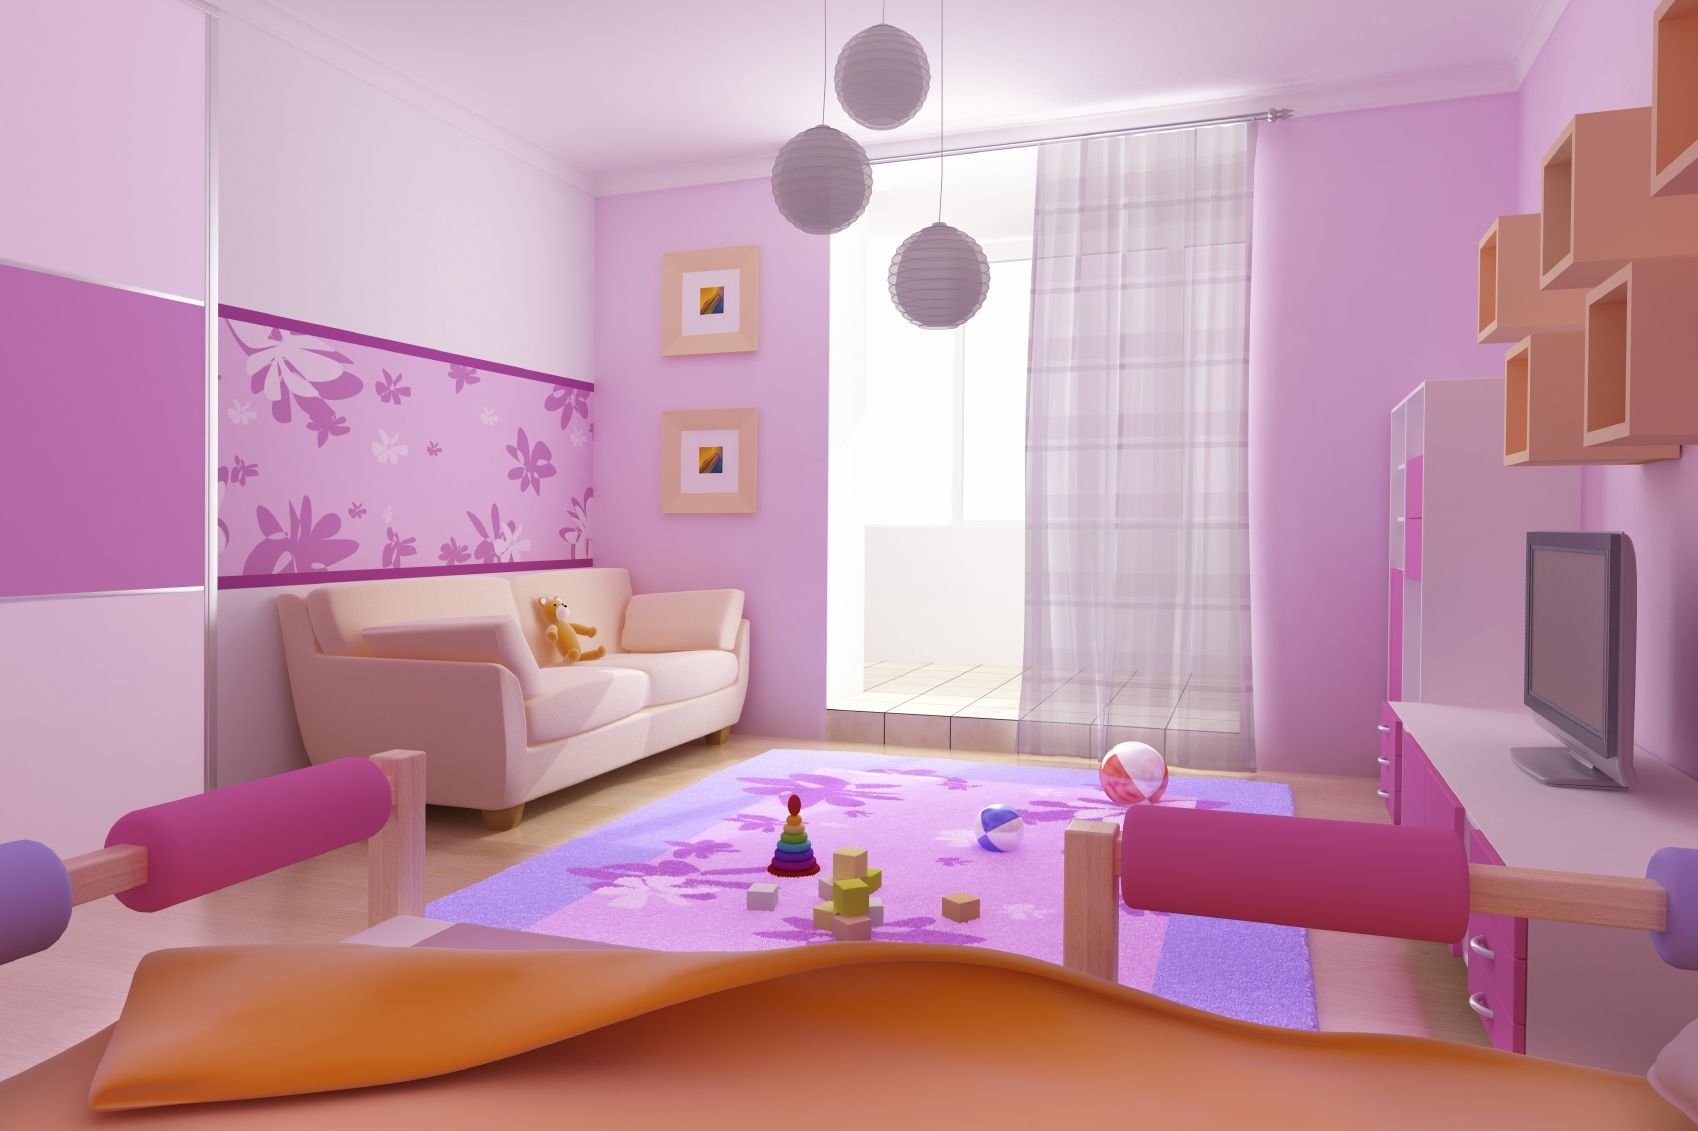 kids room interior design 1000 images about kids bedroom hristmas bedroom - Kids Interior Design Bedrooms